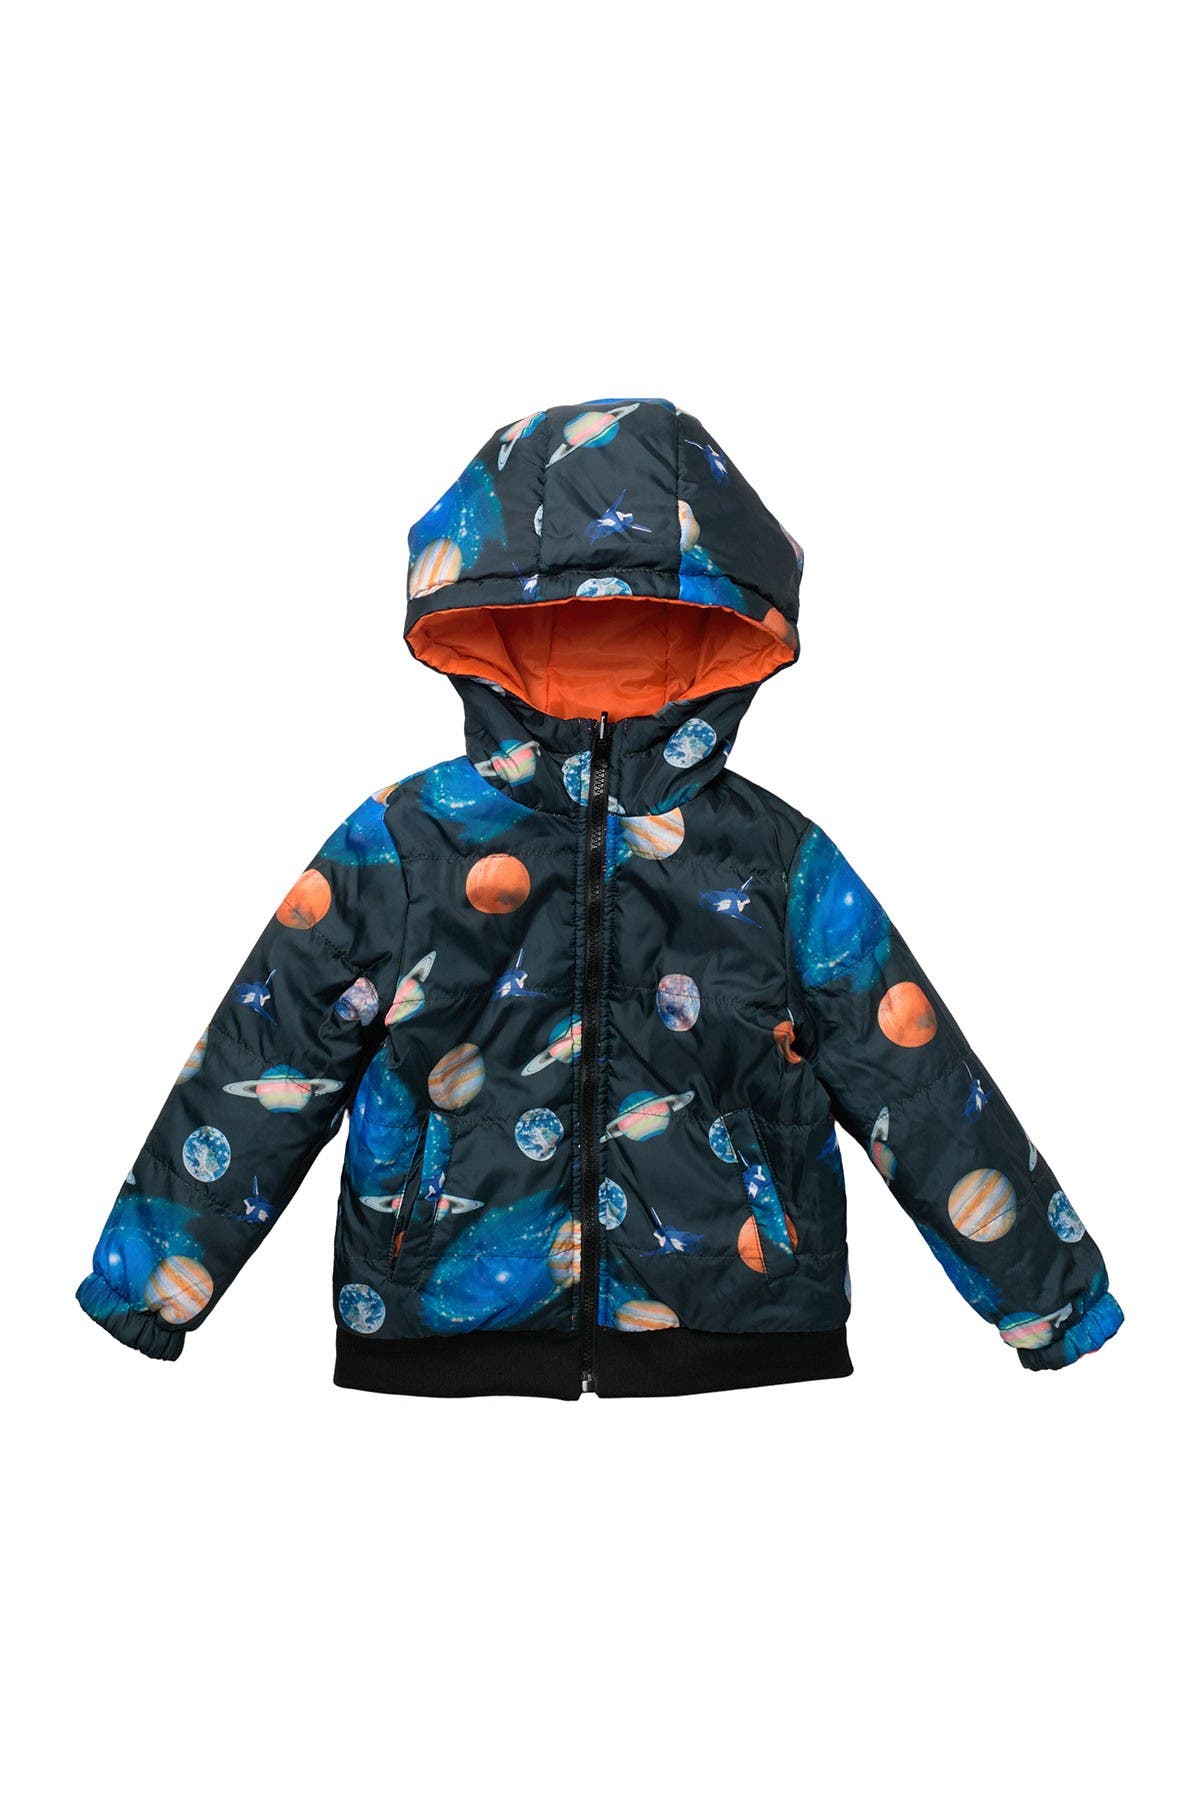 Image of Sovereign Code Province Reversible Puffer Jacket